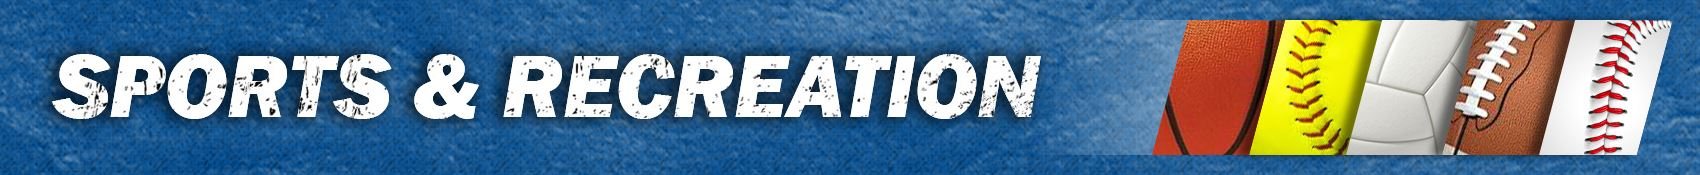 Sports and Recreation Banner